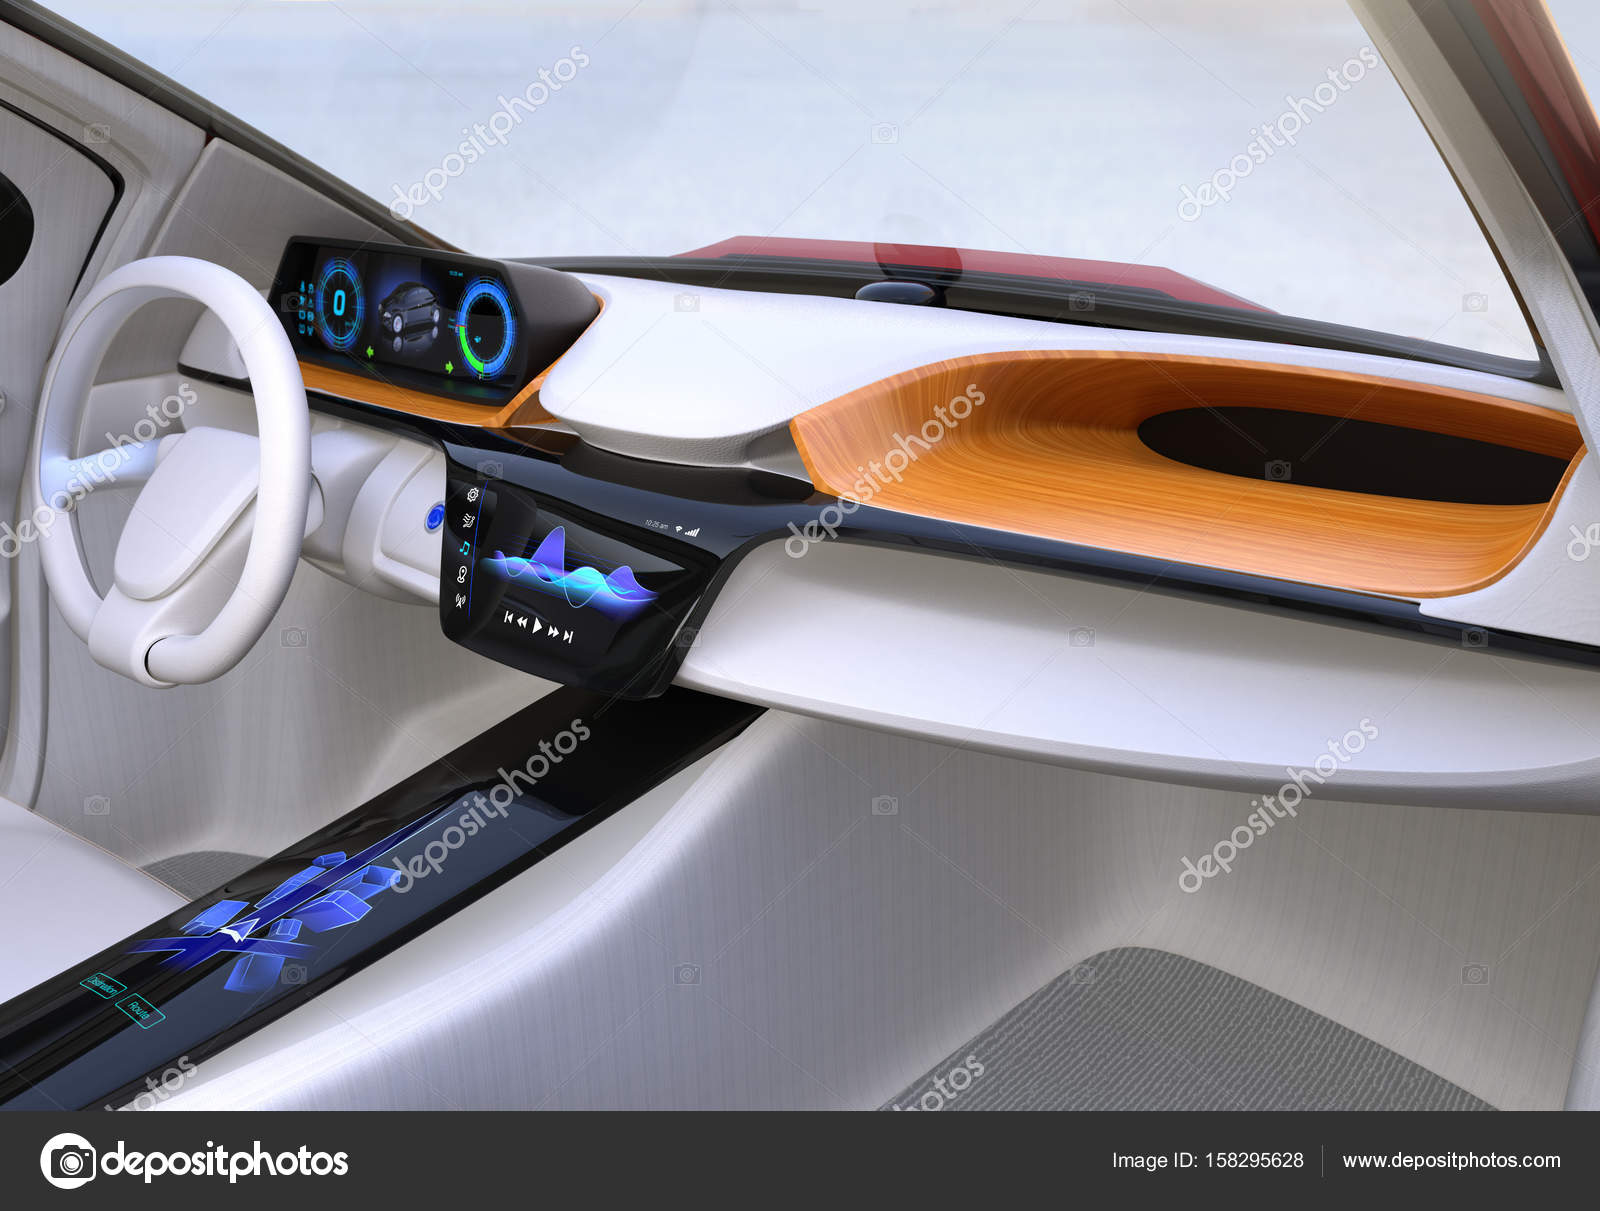 autonomous car interior concept stock photo chesky w 158295628. Black Bedroom Furniture Sets. Home Design Ideas